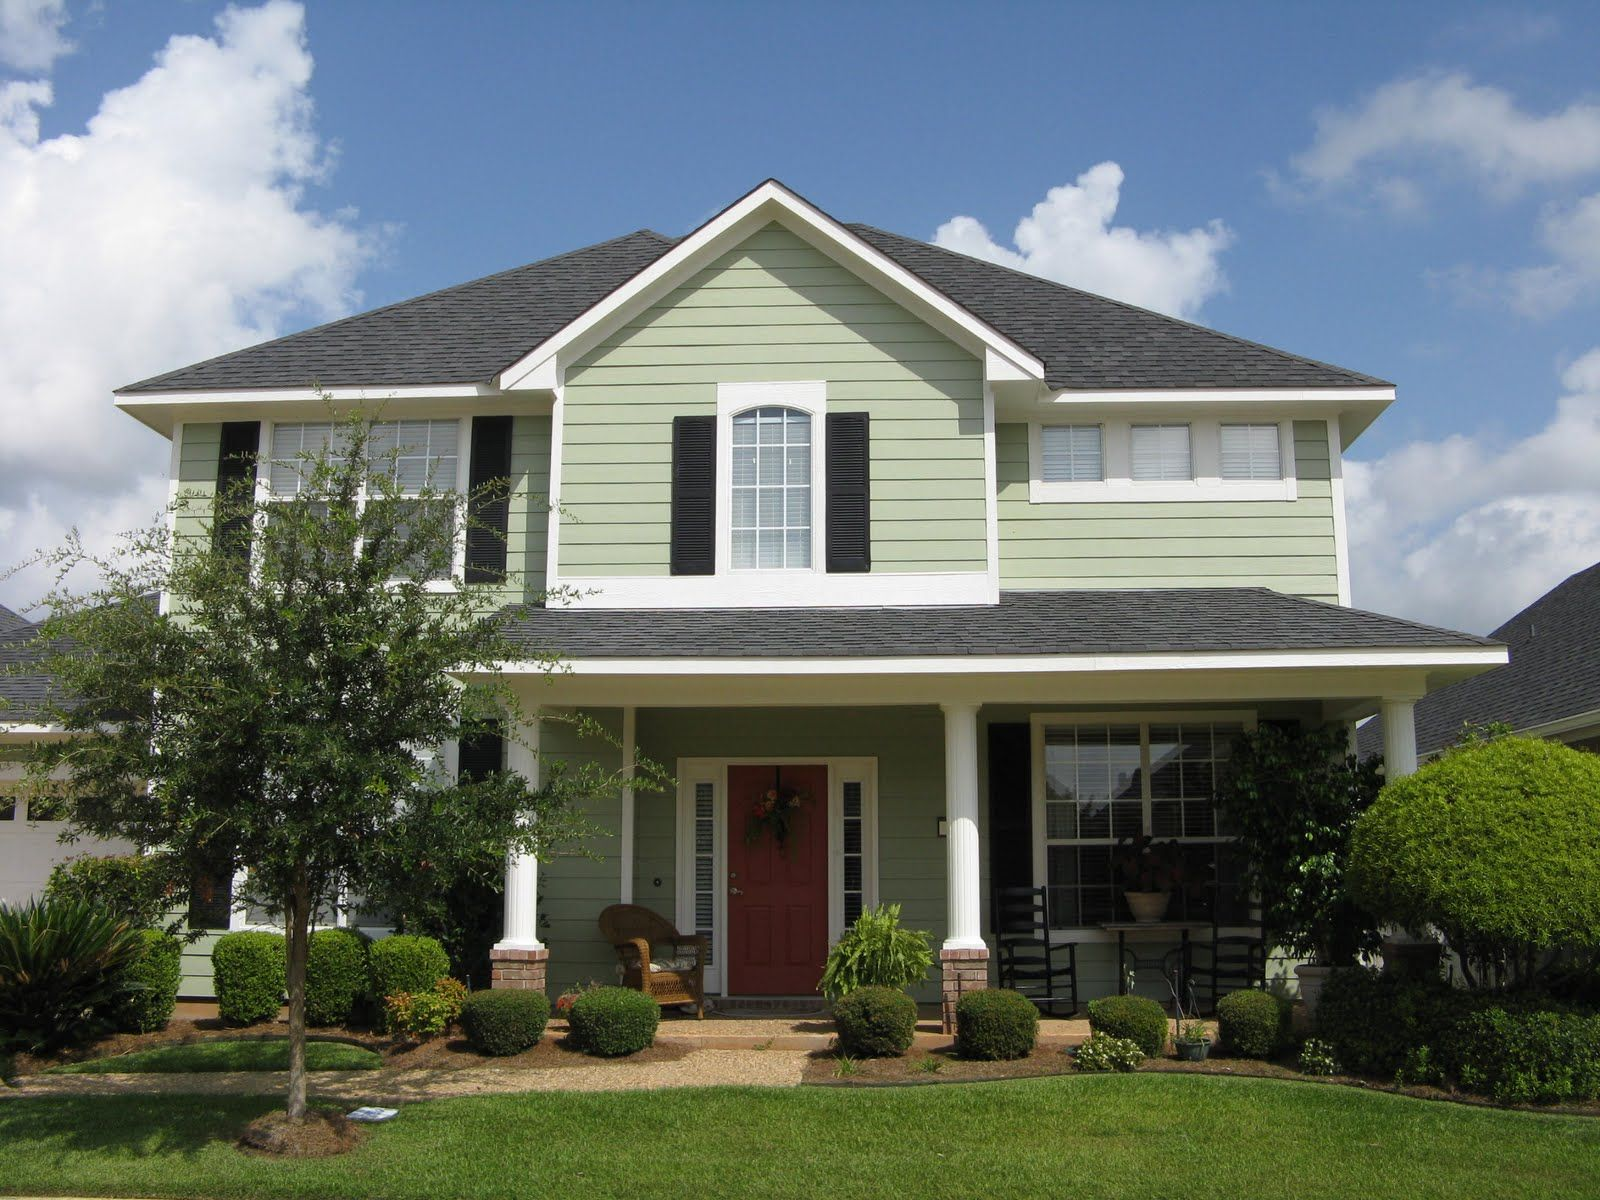 Exterior home colors green -